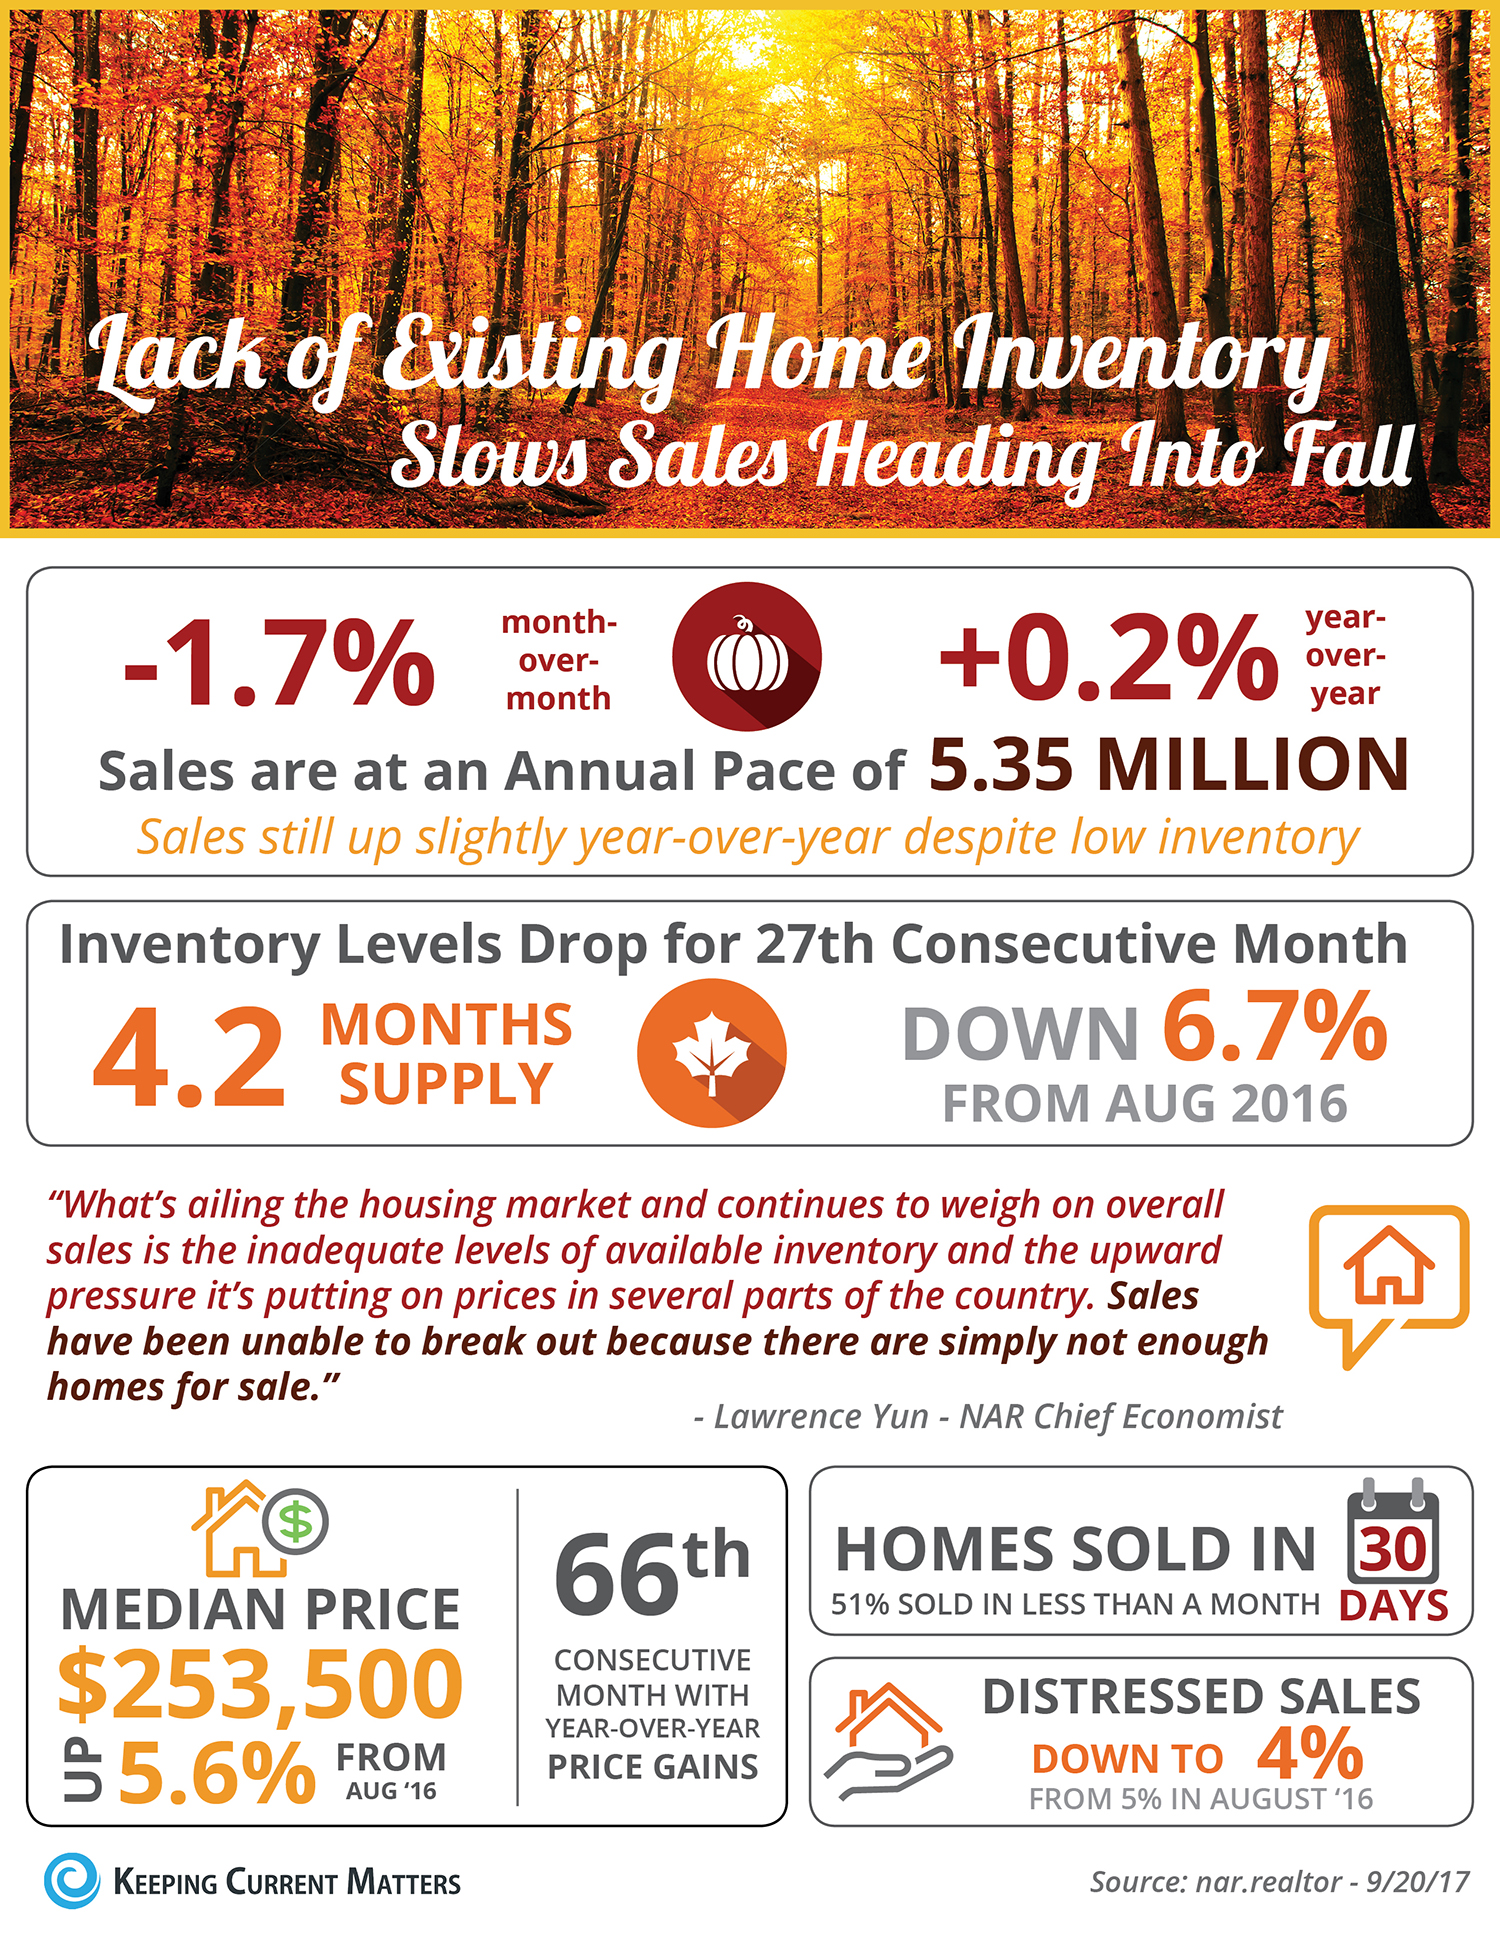 Lack of Existing Home Inventory Slows Sales Heading into Fall [INFOGRAPHIC] | Keeping Current Matters